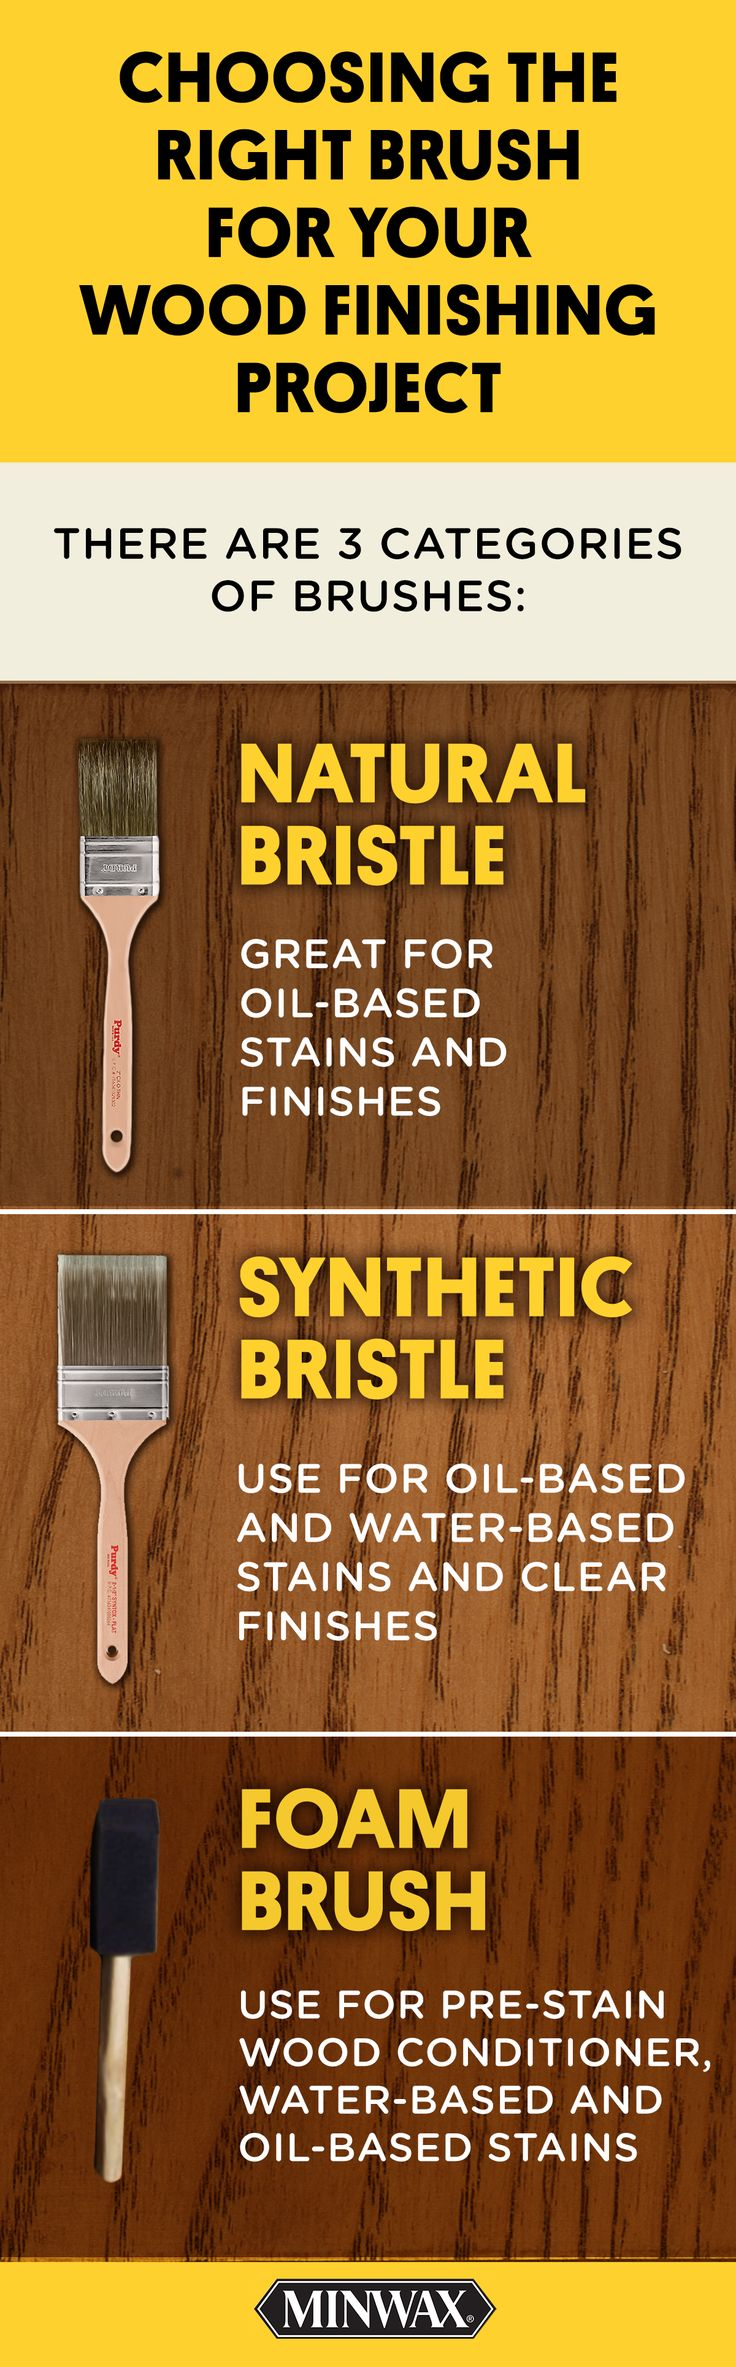 After you've chosen the right finishes for your job, make sure you also choose the right brushes. Here are the best times to use natural, synthetic and foam brushes. Click for more tips from Minwax® about choosing brushes.